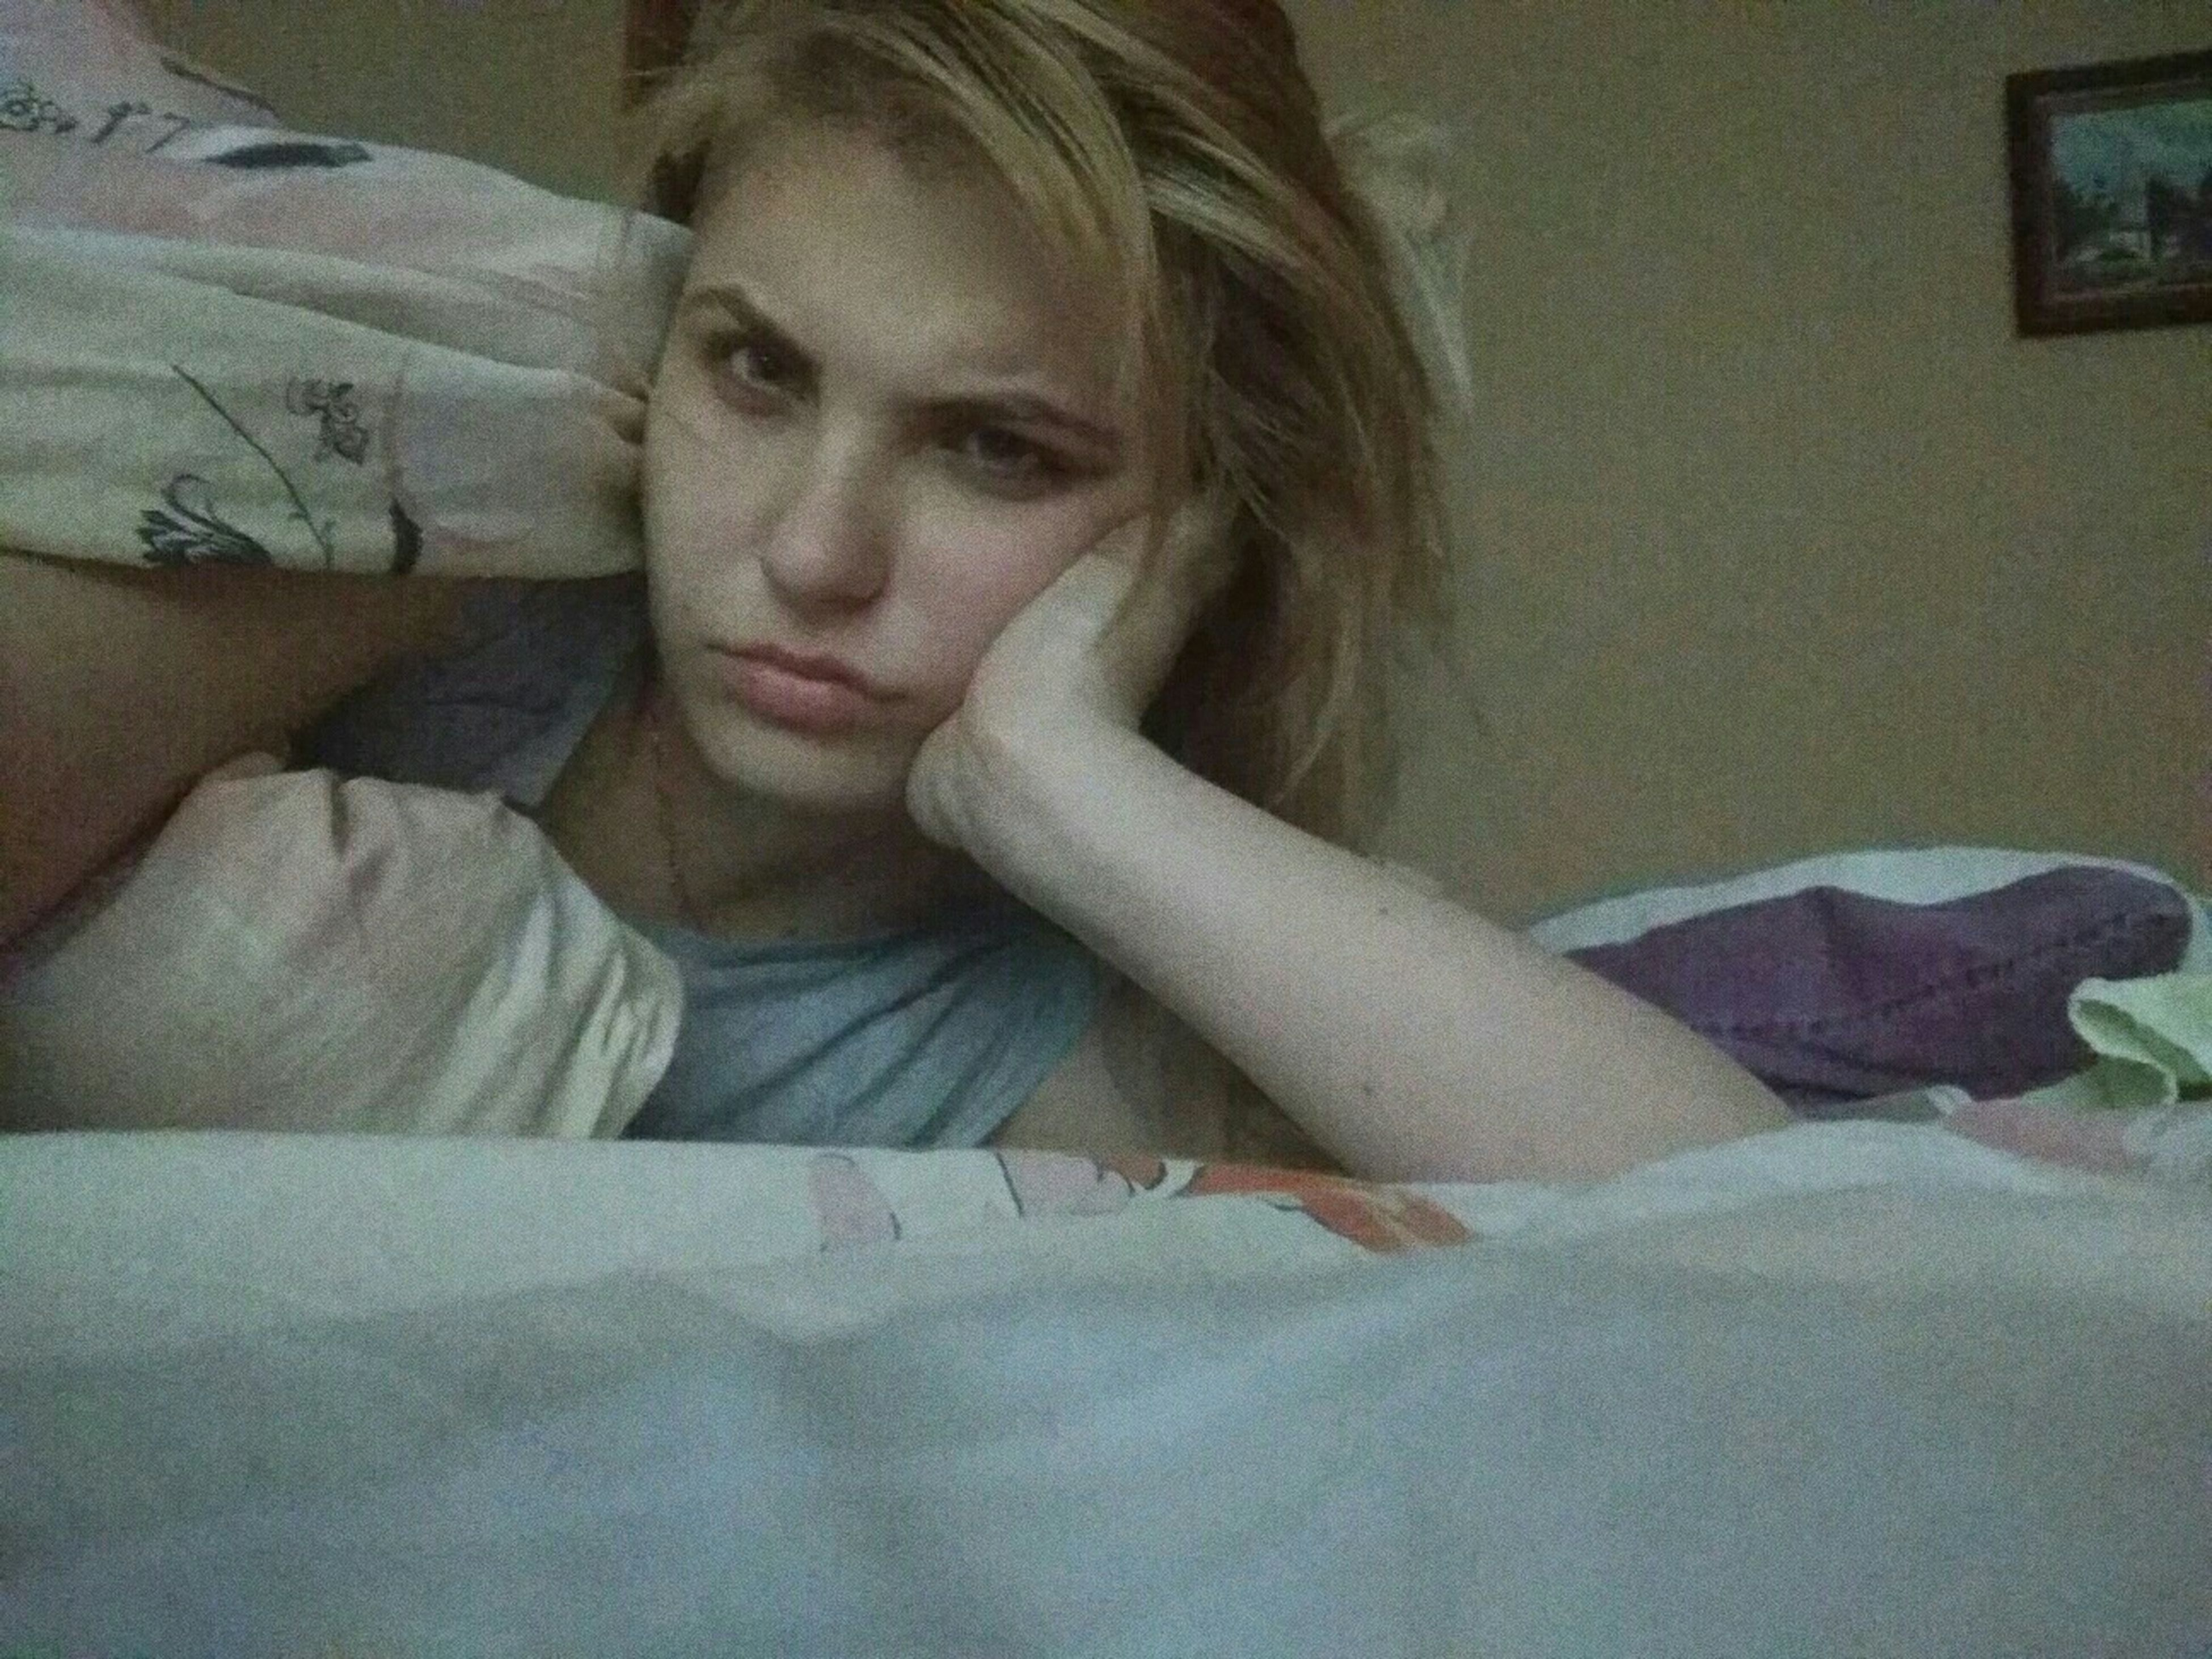 one person, indoors, tensed, depression - sadness, disappointment, worried, home interior, young adult, real people, young women, distraught, sitting, women, bed, close-up, portrait, blond hair, bedroom, relationship difficulties, day, people